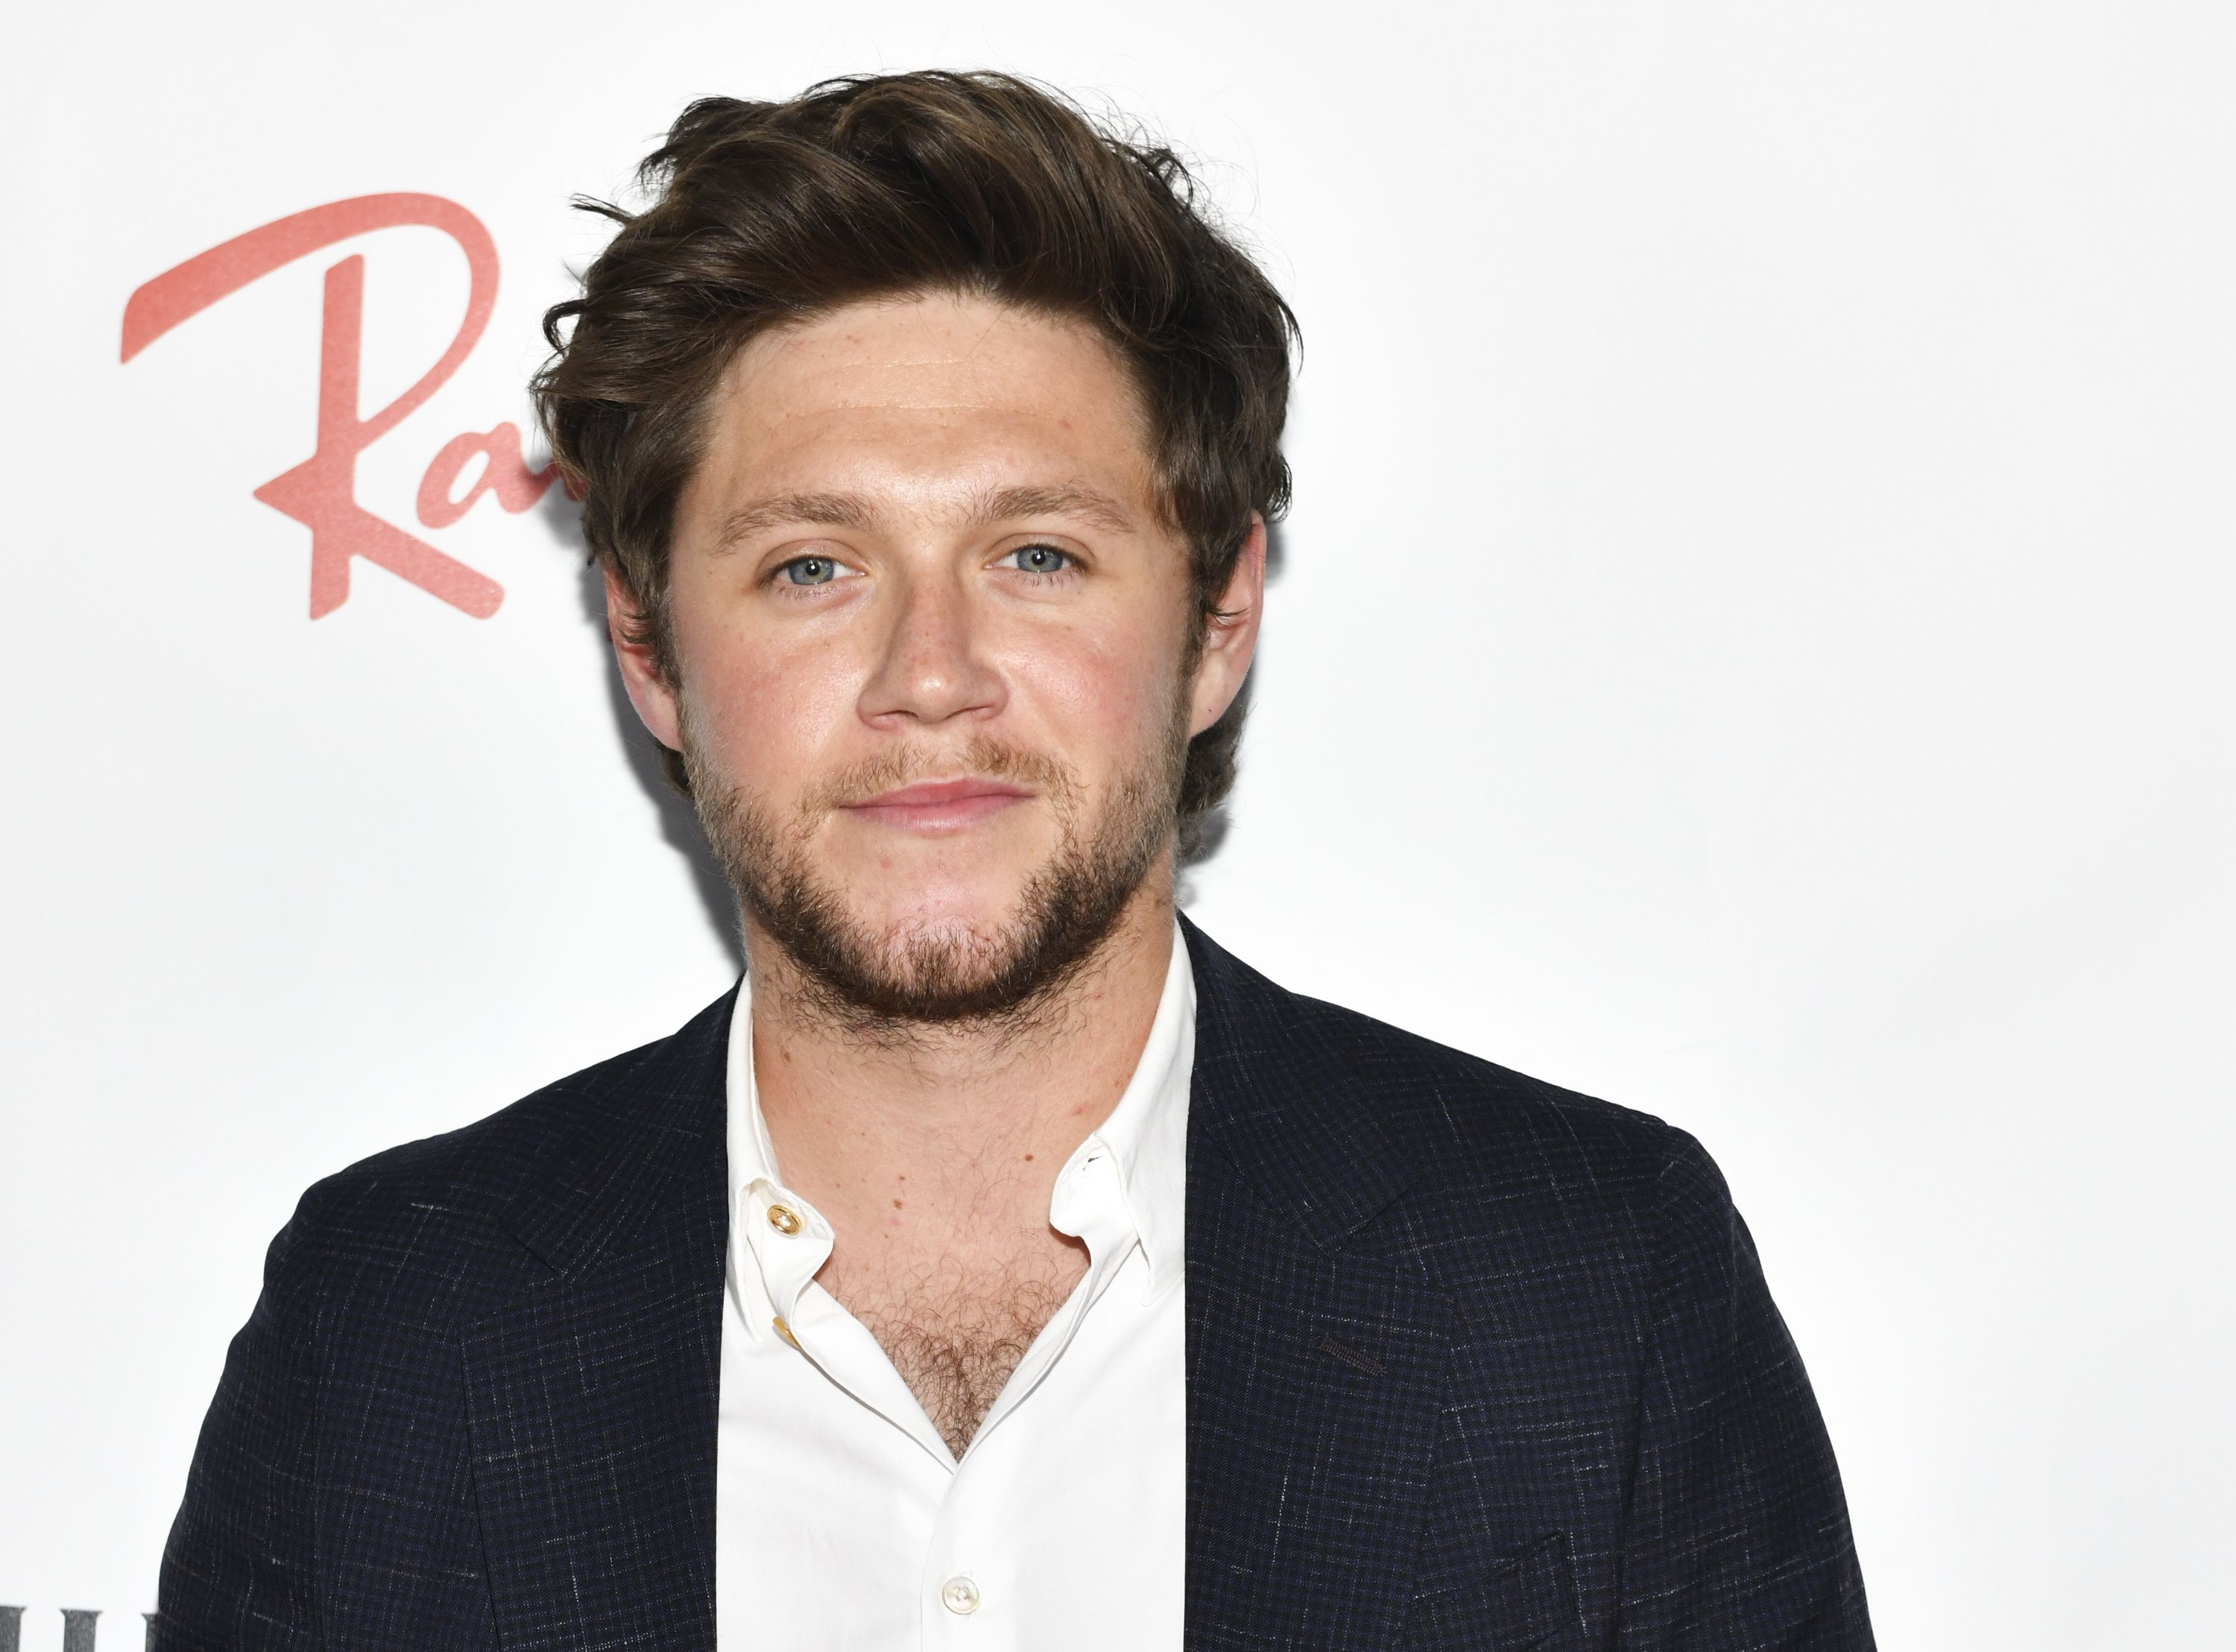 Niall Horan Might Have Dyed His Hair Blonde and His Fans Are